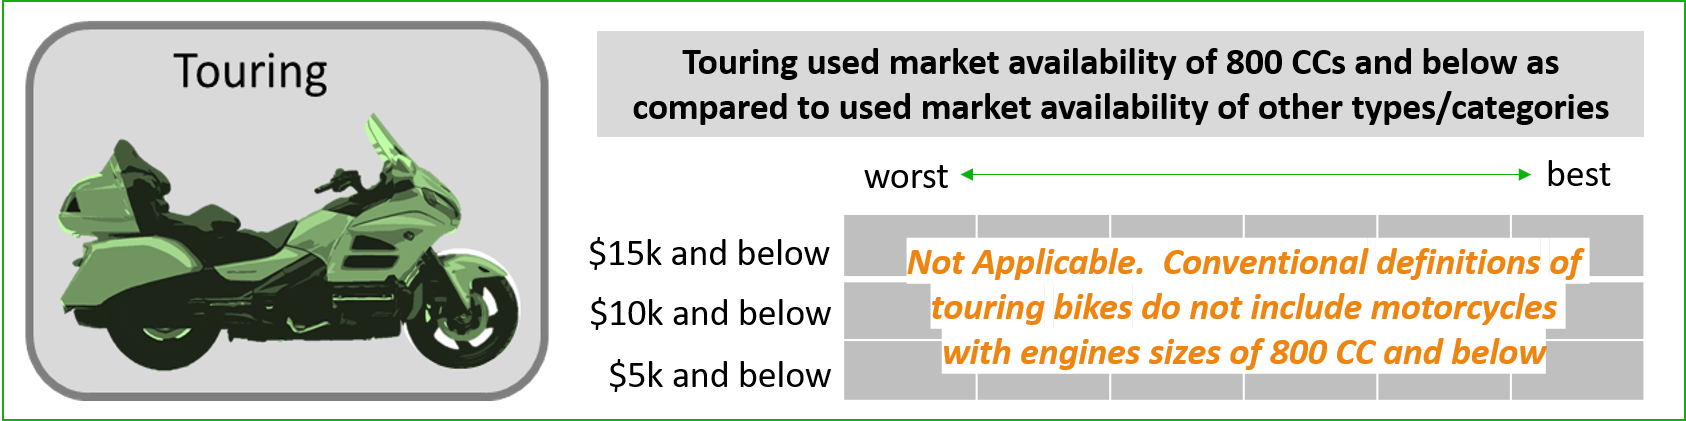 used touring type beginner motorcycle market availability infographic